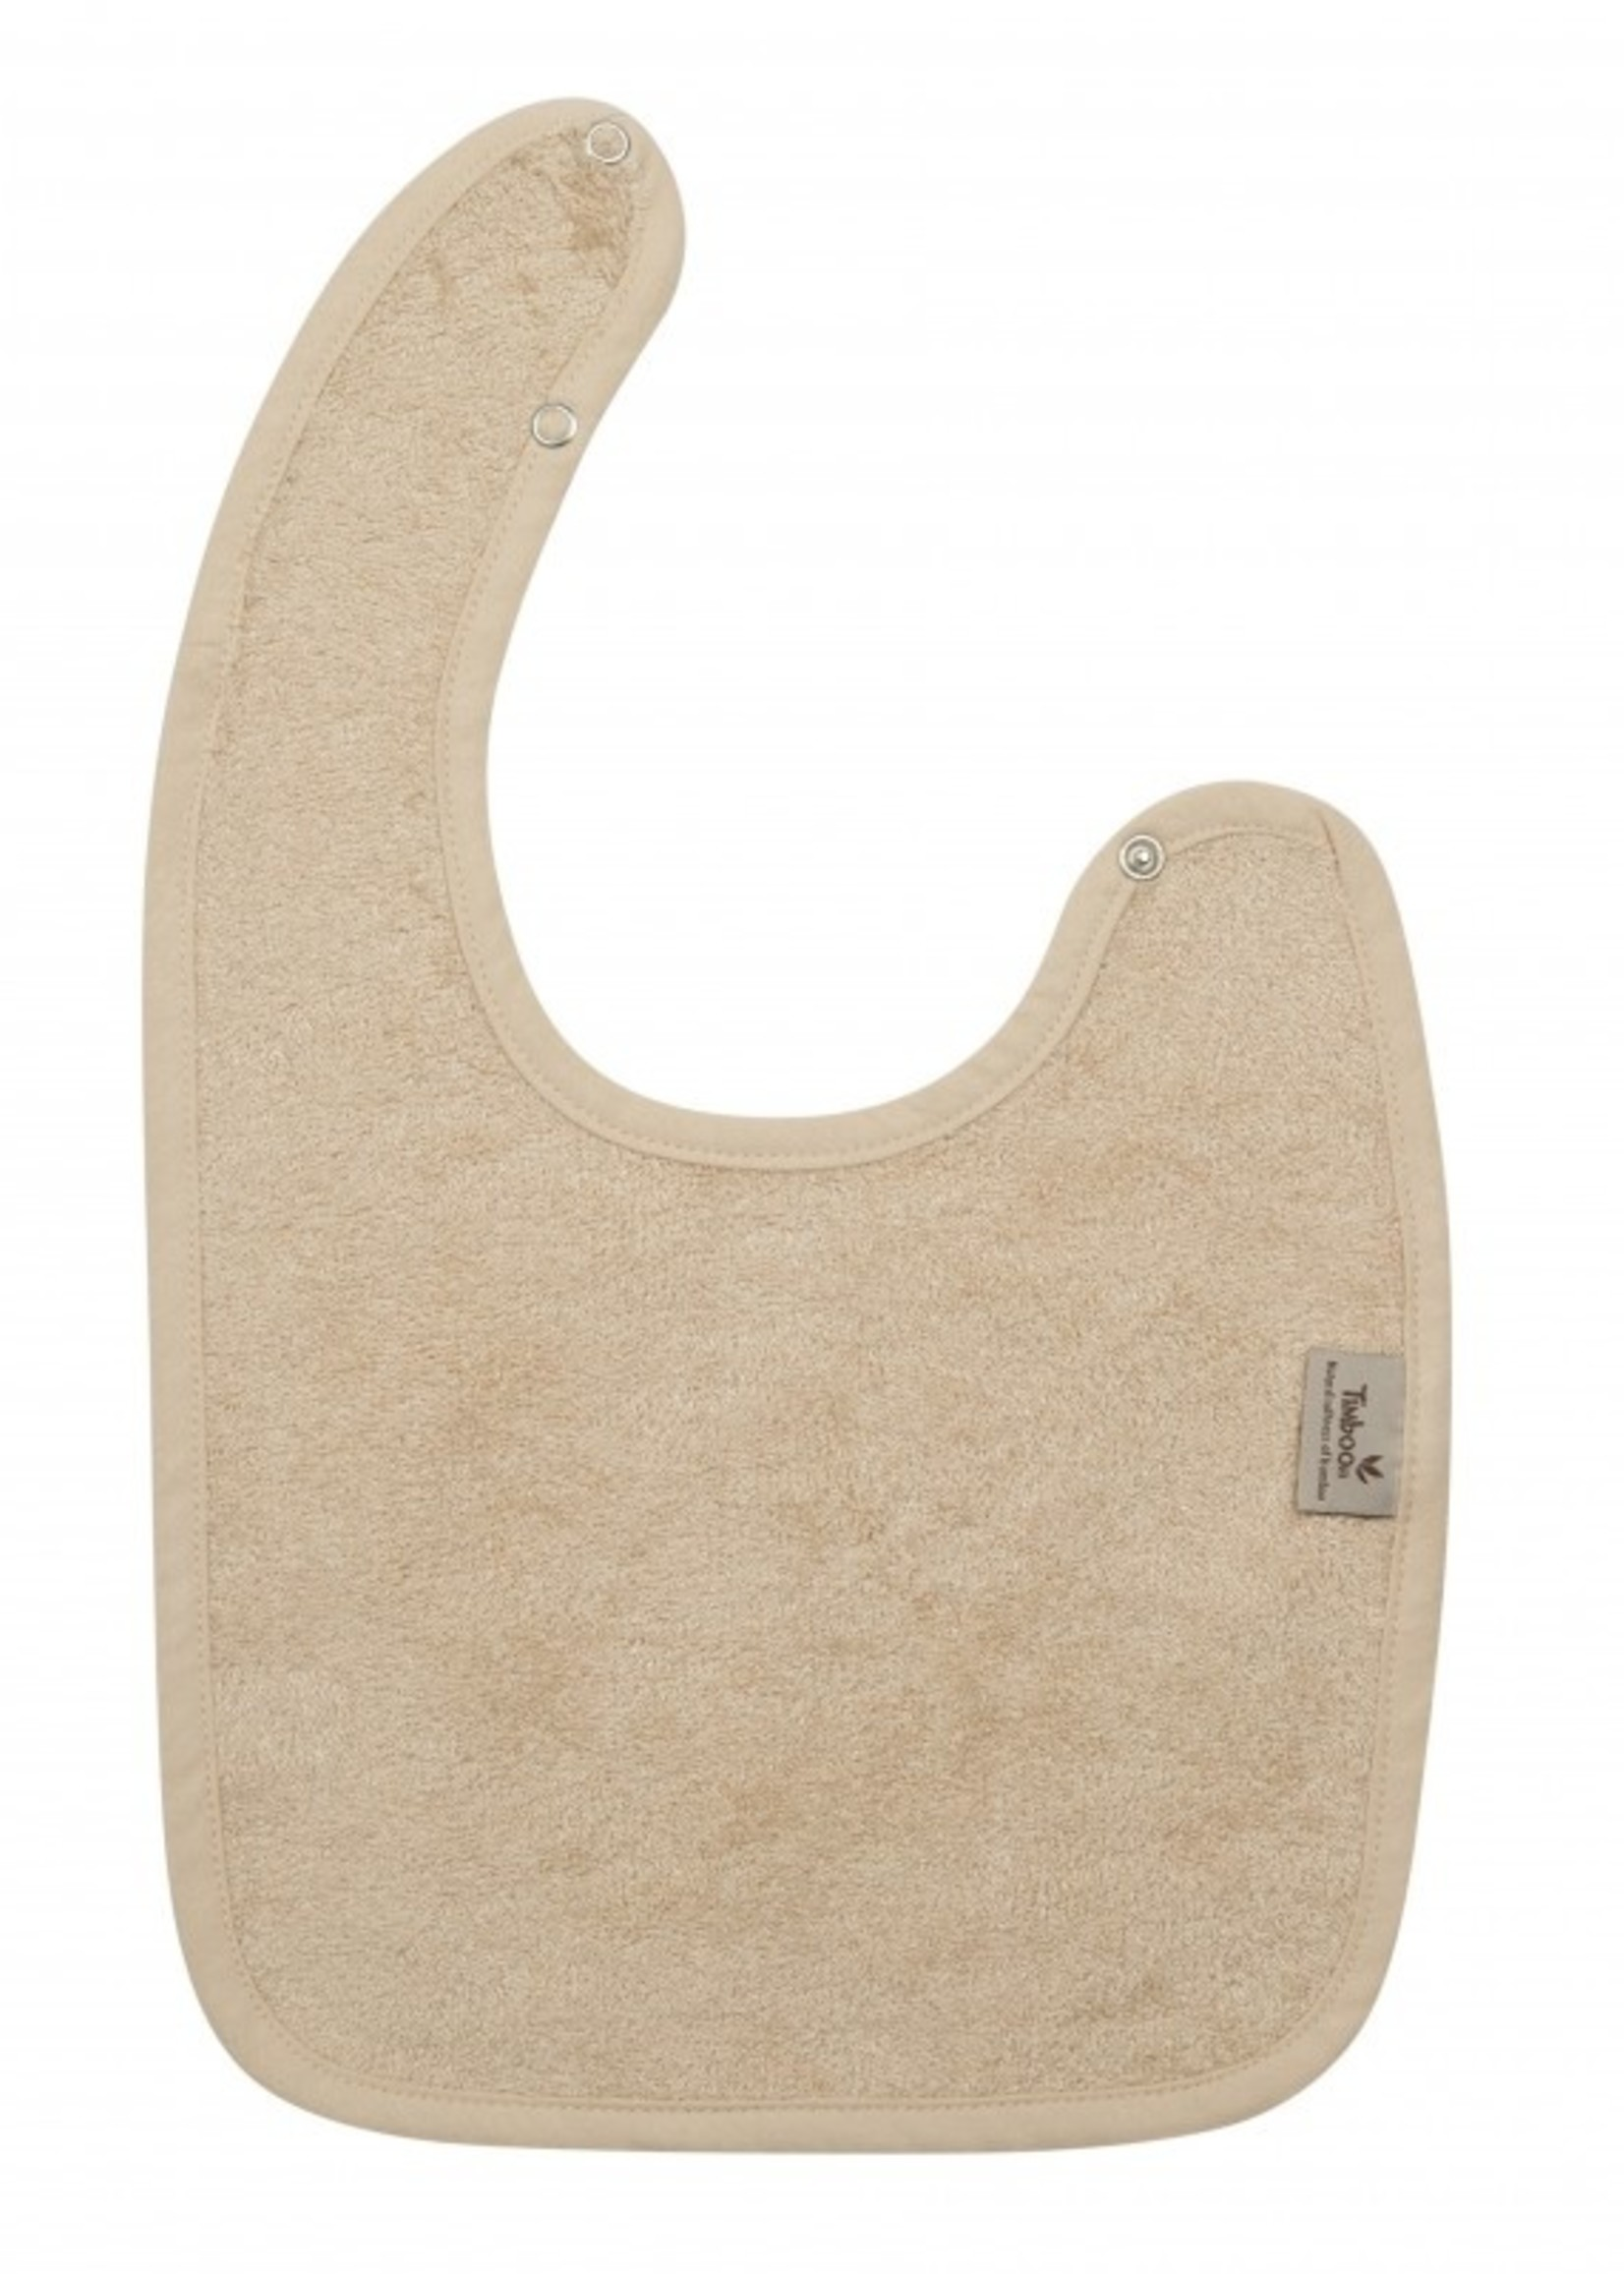 Timboo Bib - Frosted Almond